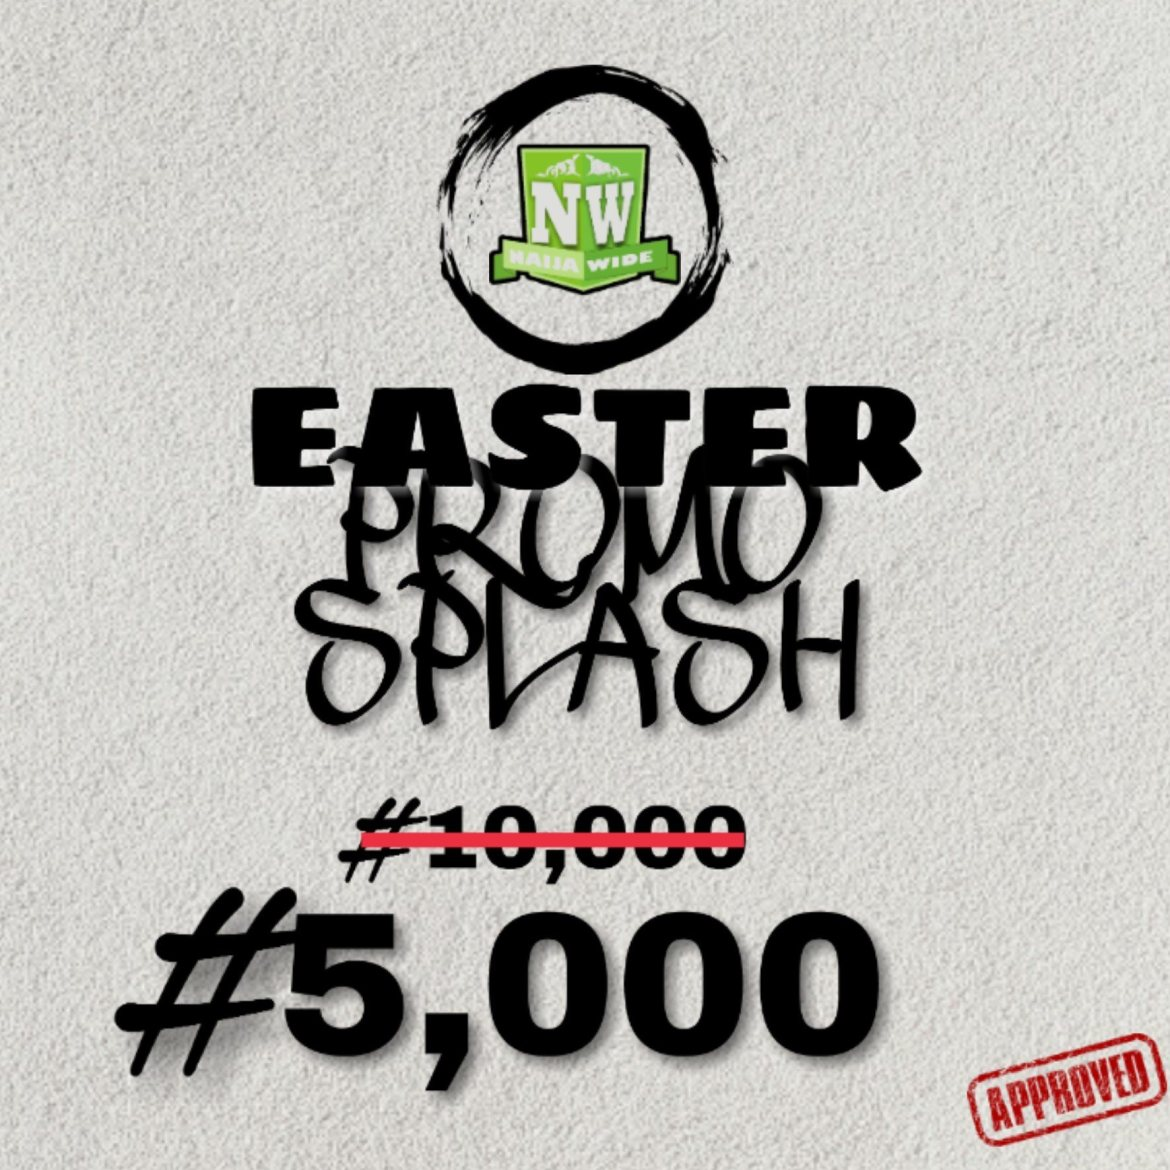 HOT!!! NaijaWide Easter Promo Splash – Promote Your Song Now